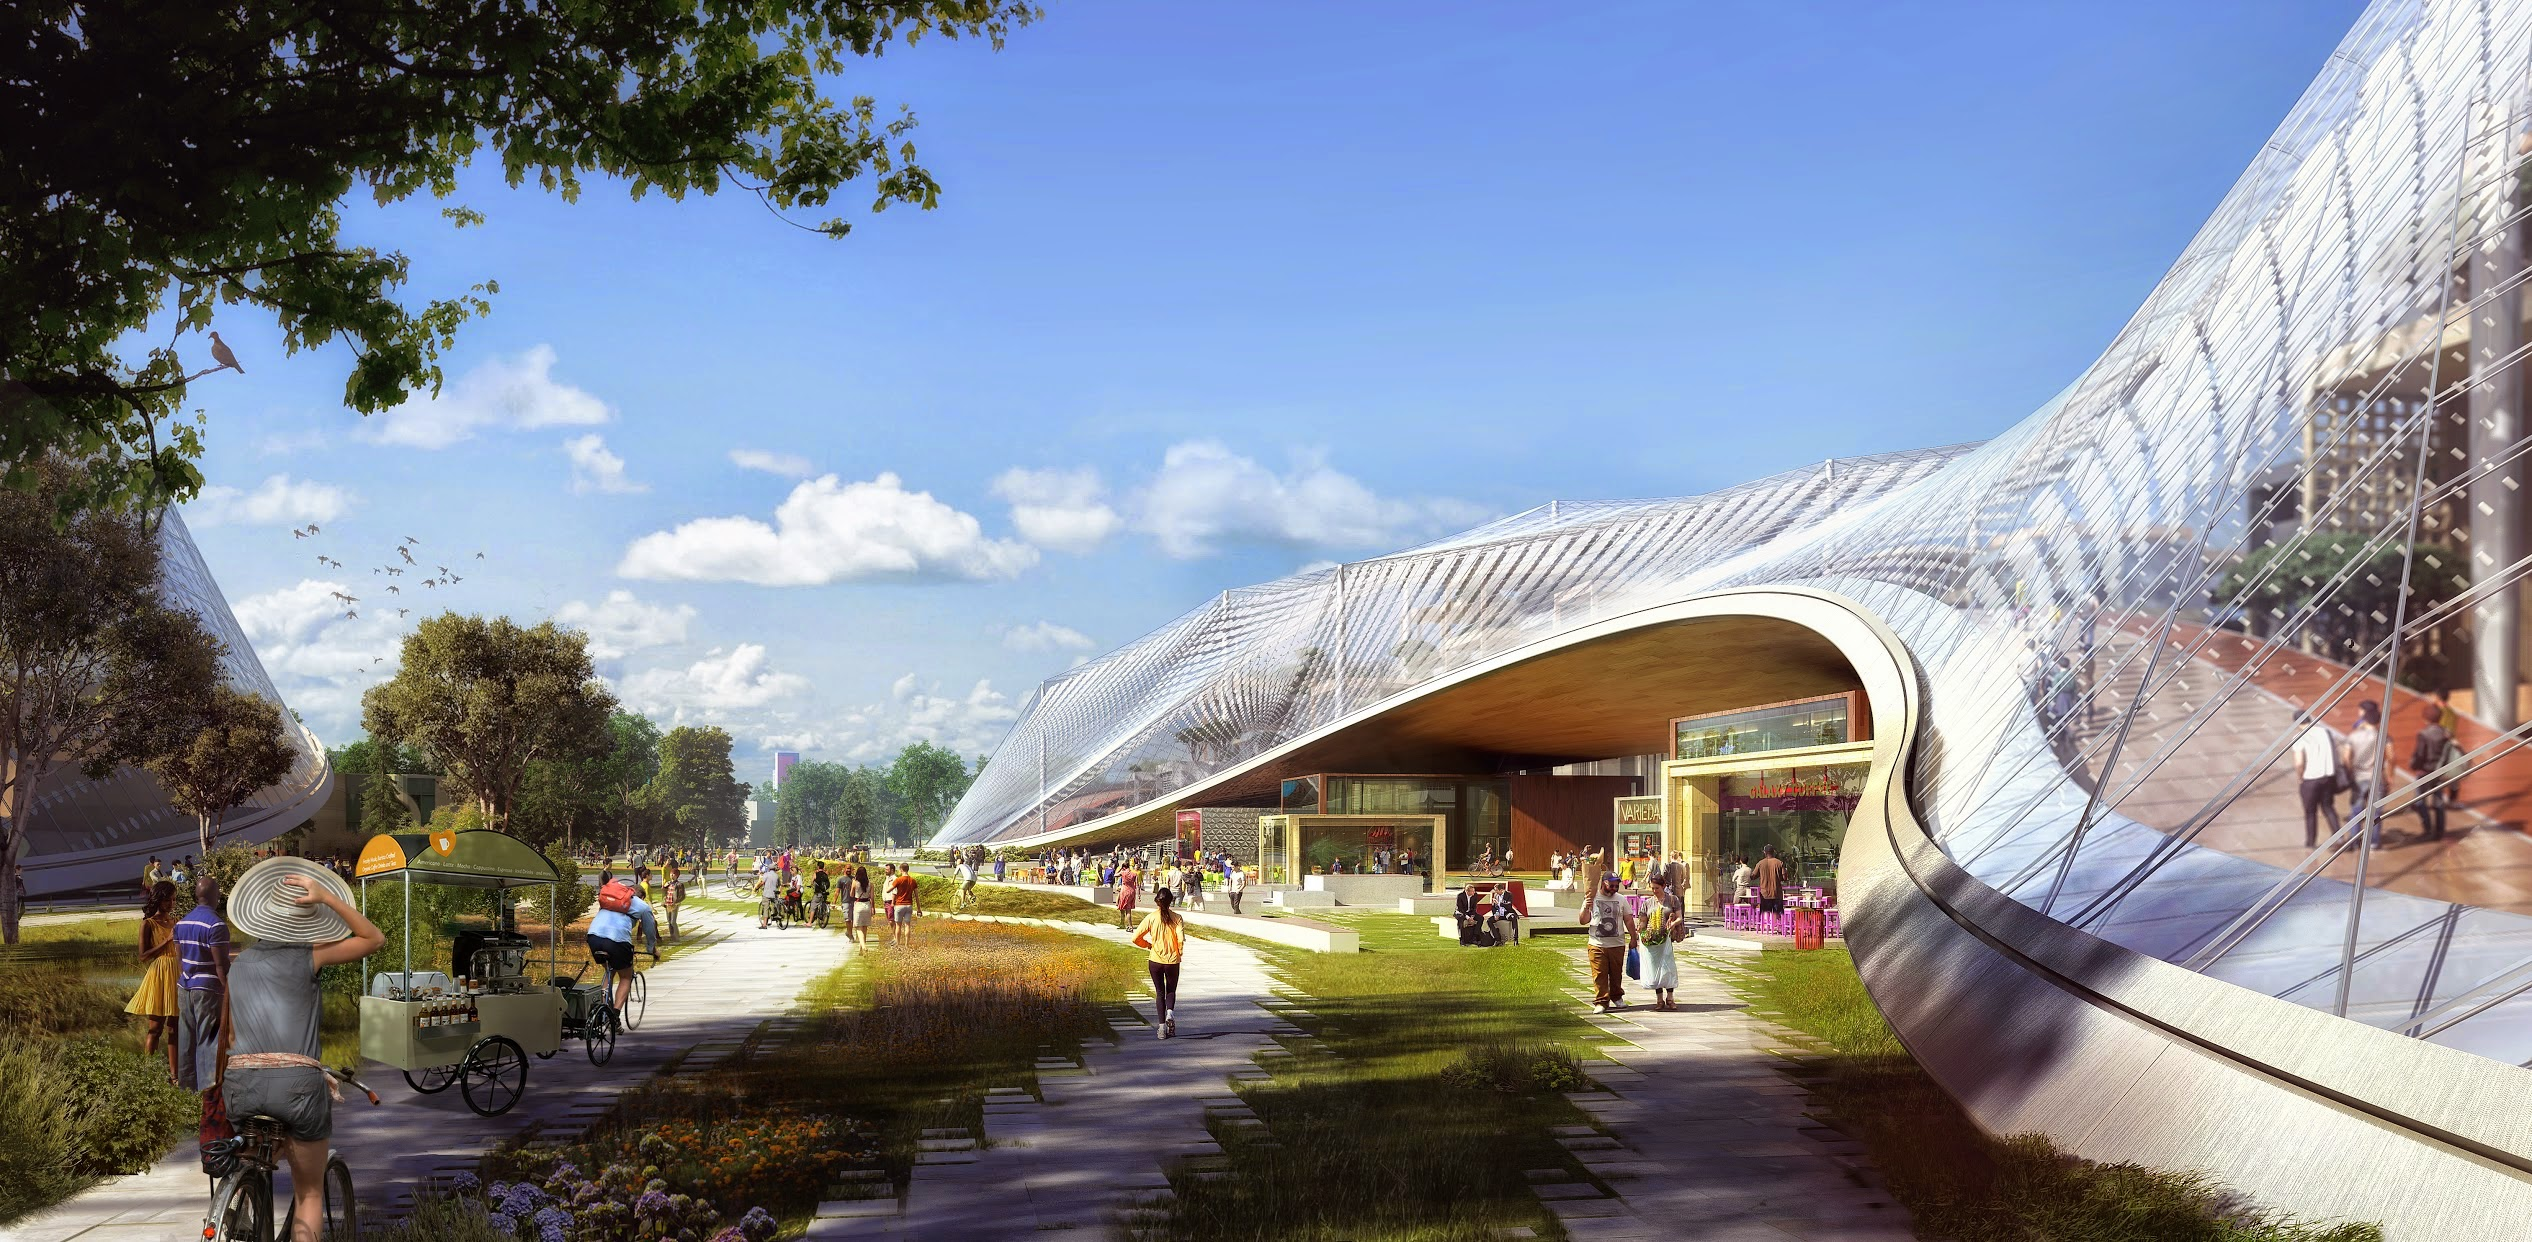 Check out renderings of Google's cool new campus of movable structures